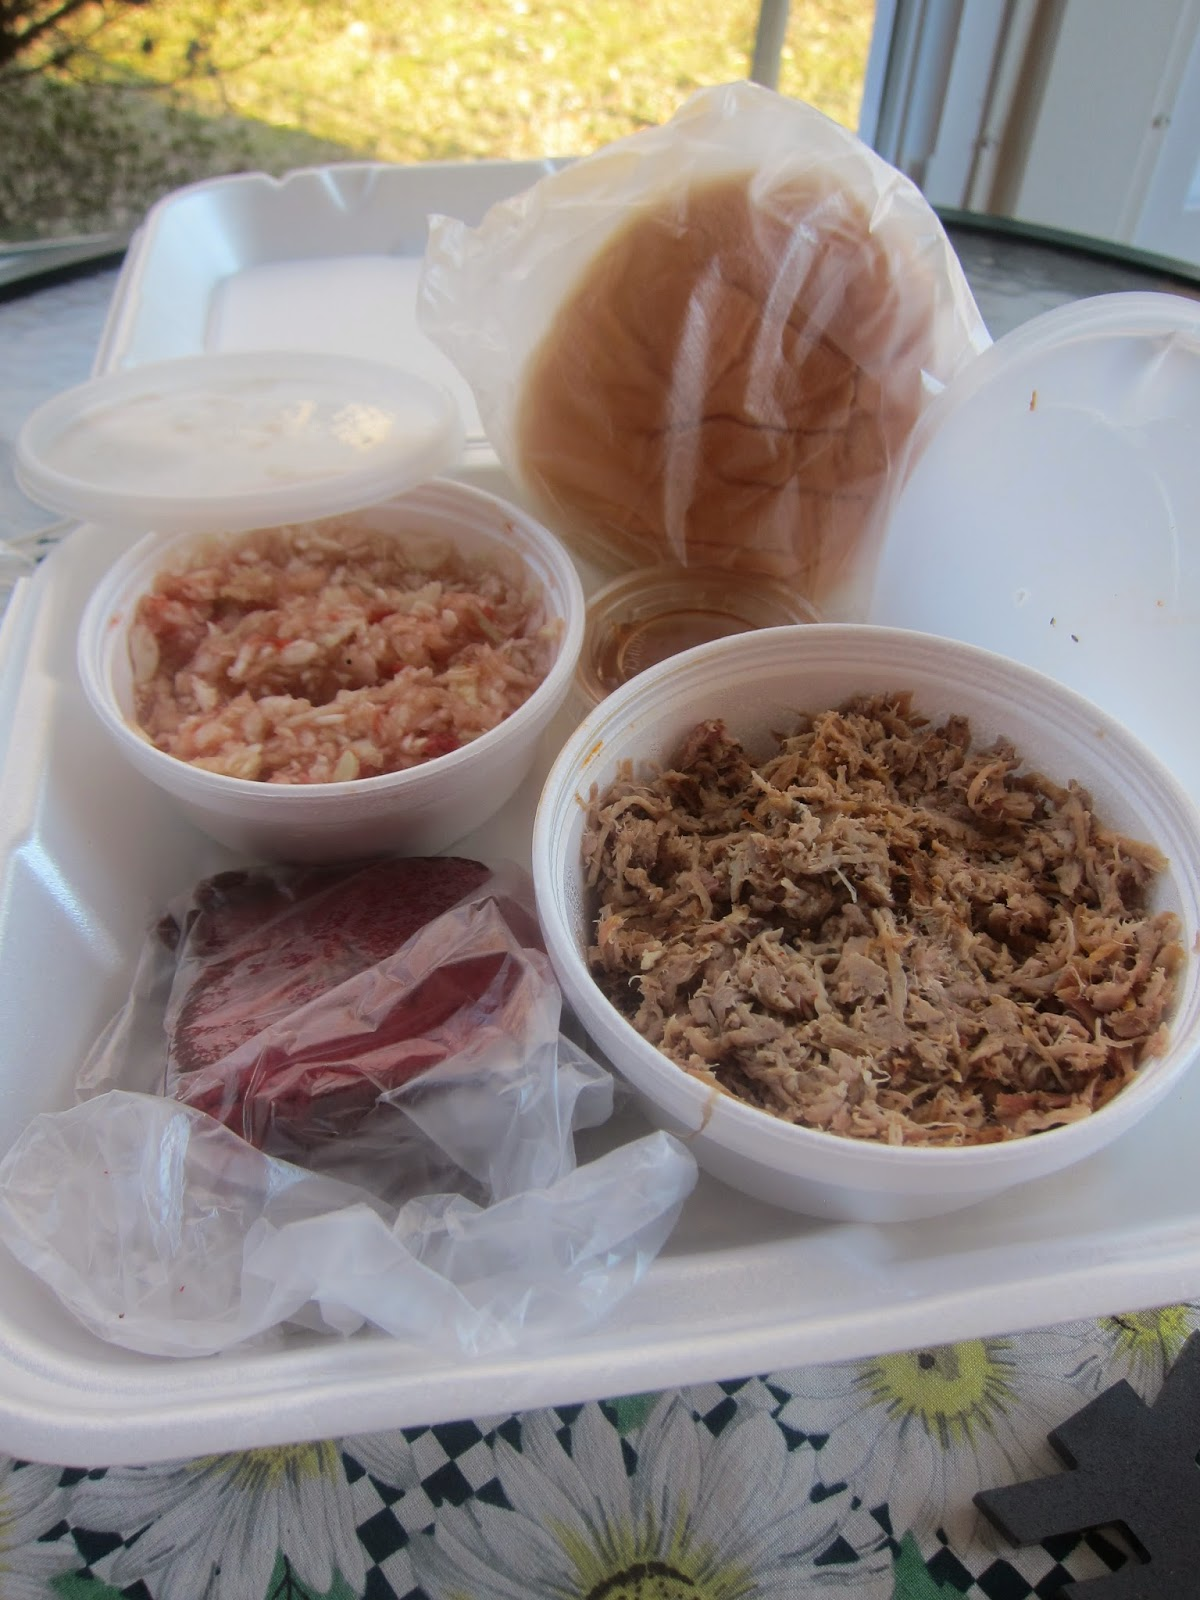 Barbecue Master Church Bbq Dinners In North Carolina Millford